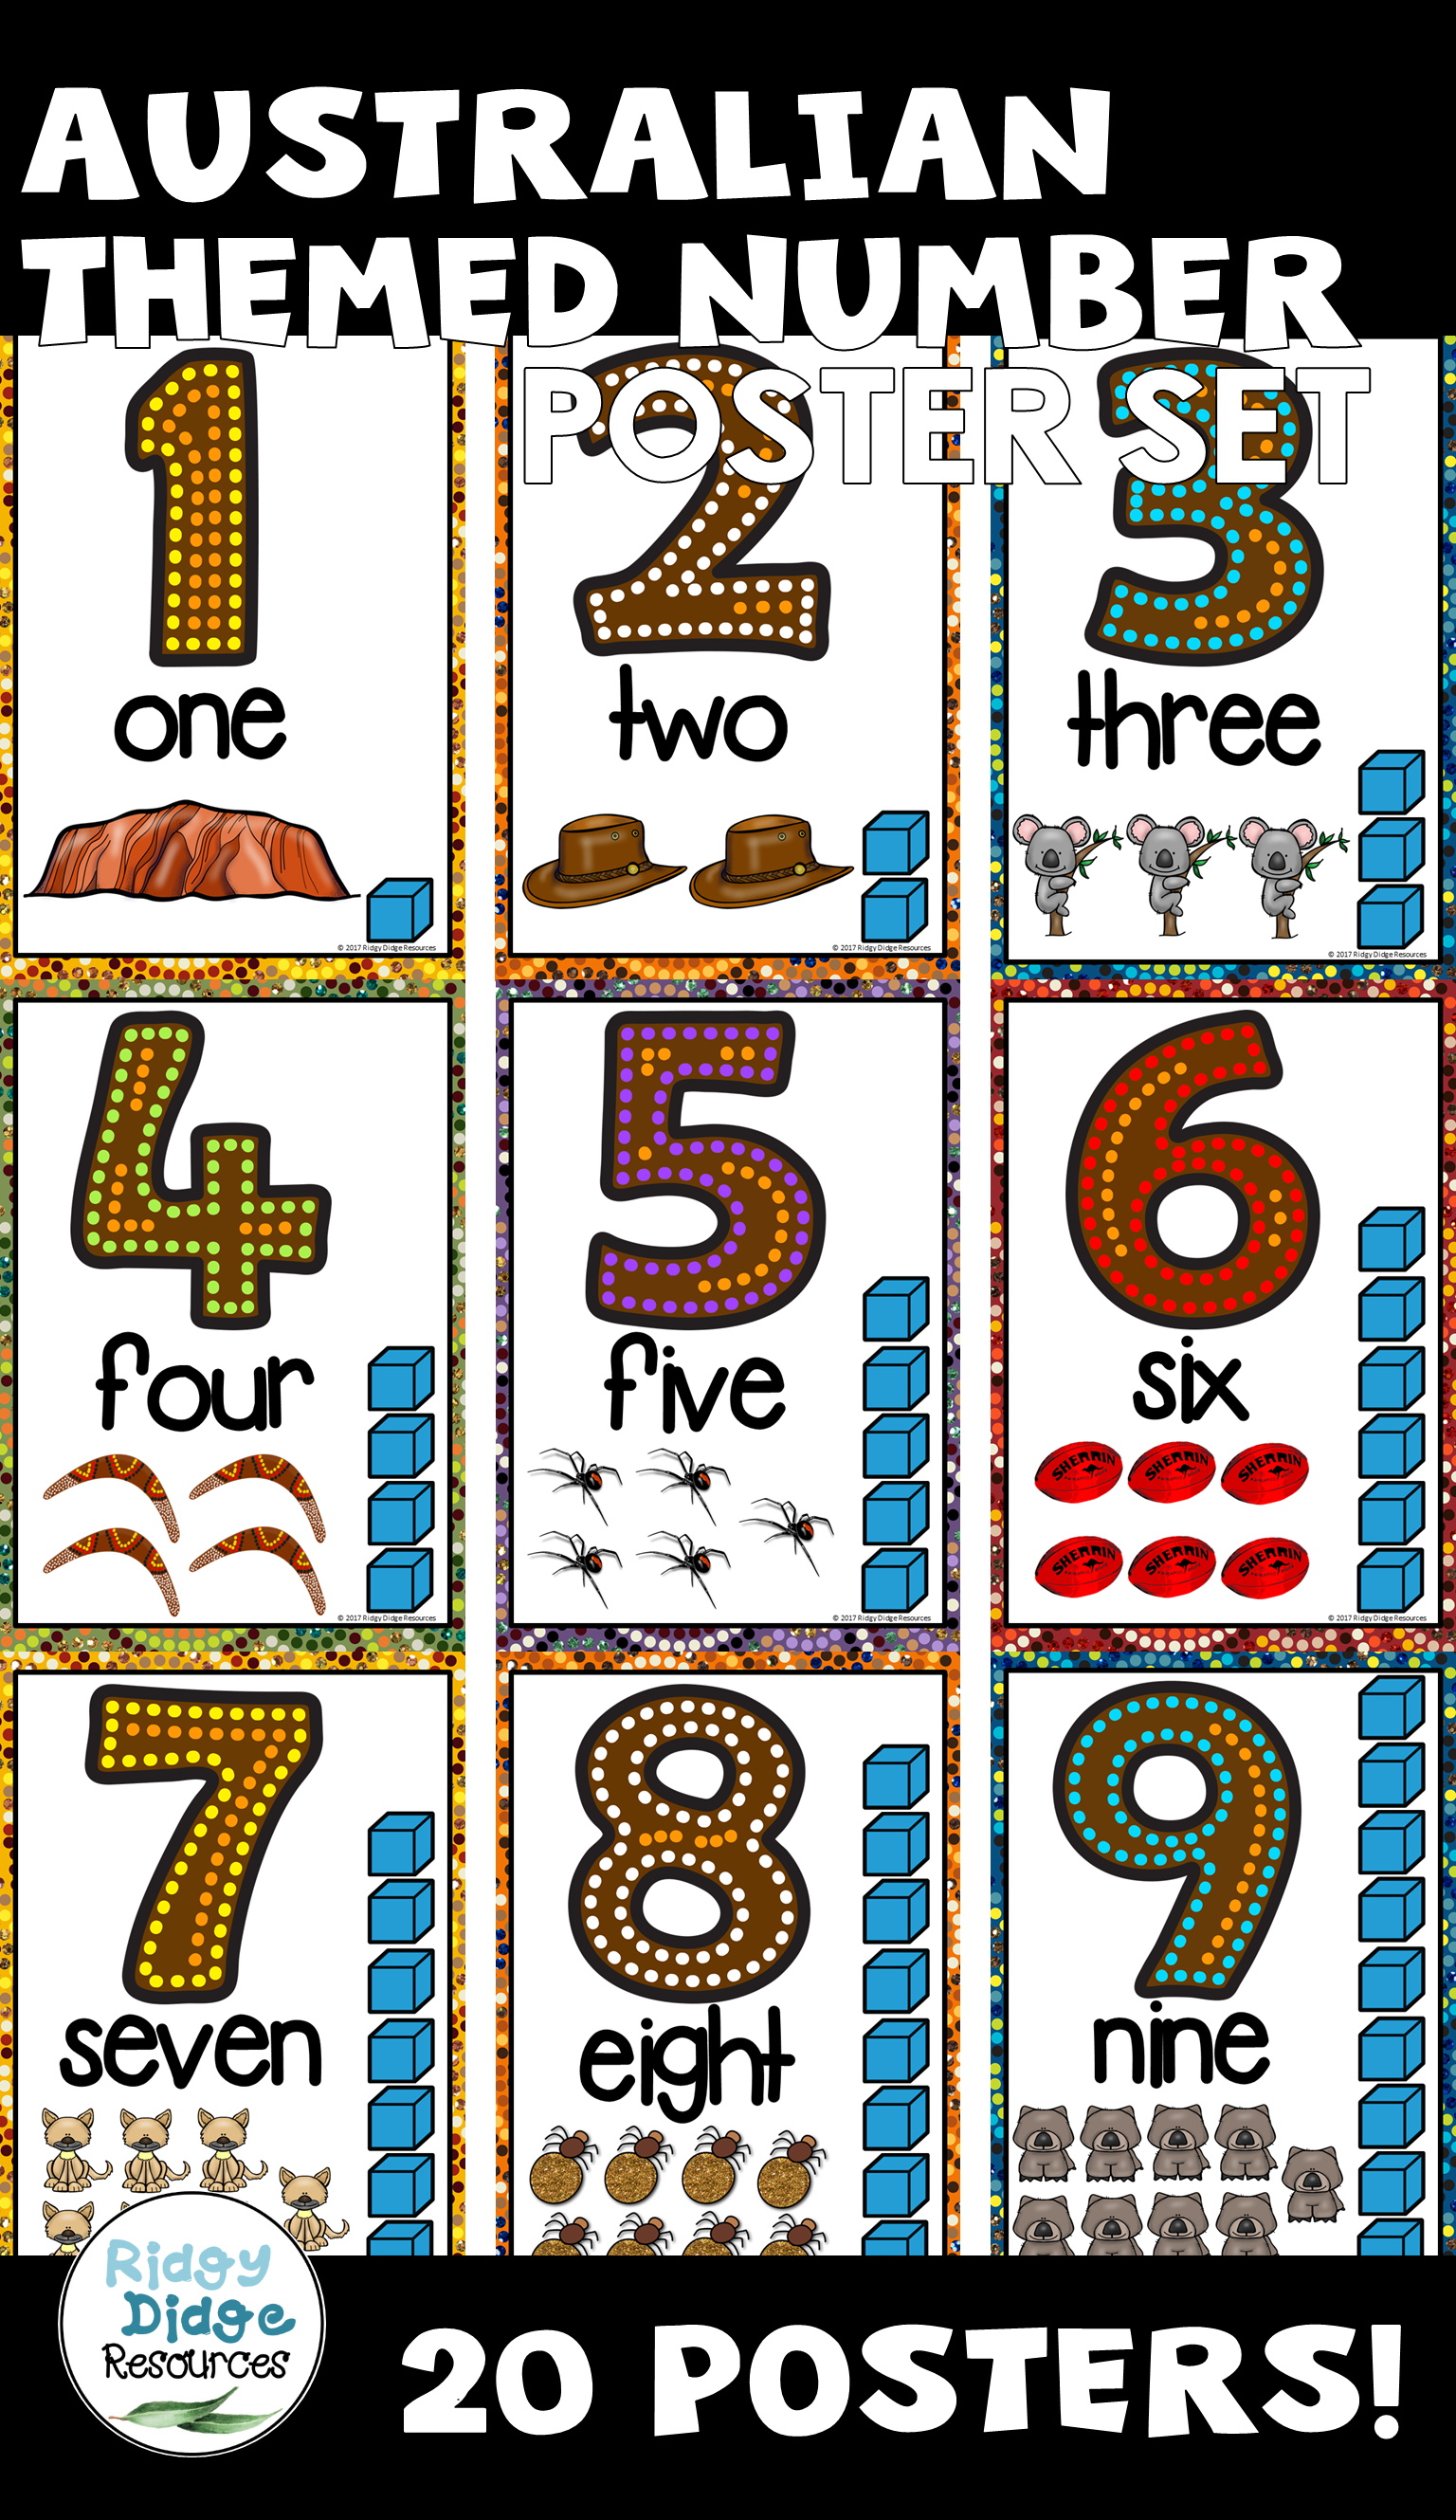 Australian Themed Number Posters Classroomdecor Numberposters Australianthemedclassroom Number Poster Numeracy Activities Aboriginal Education